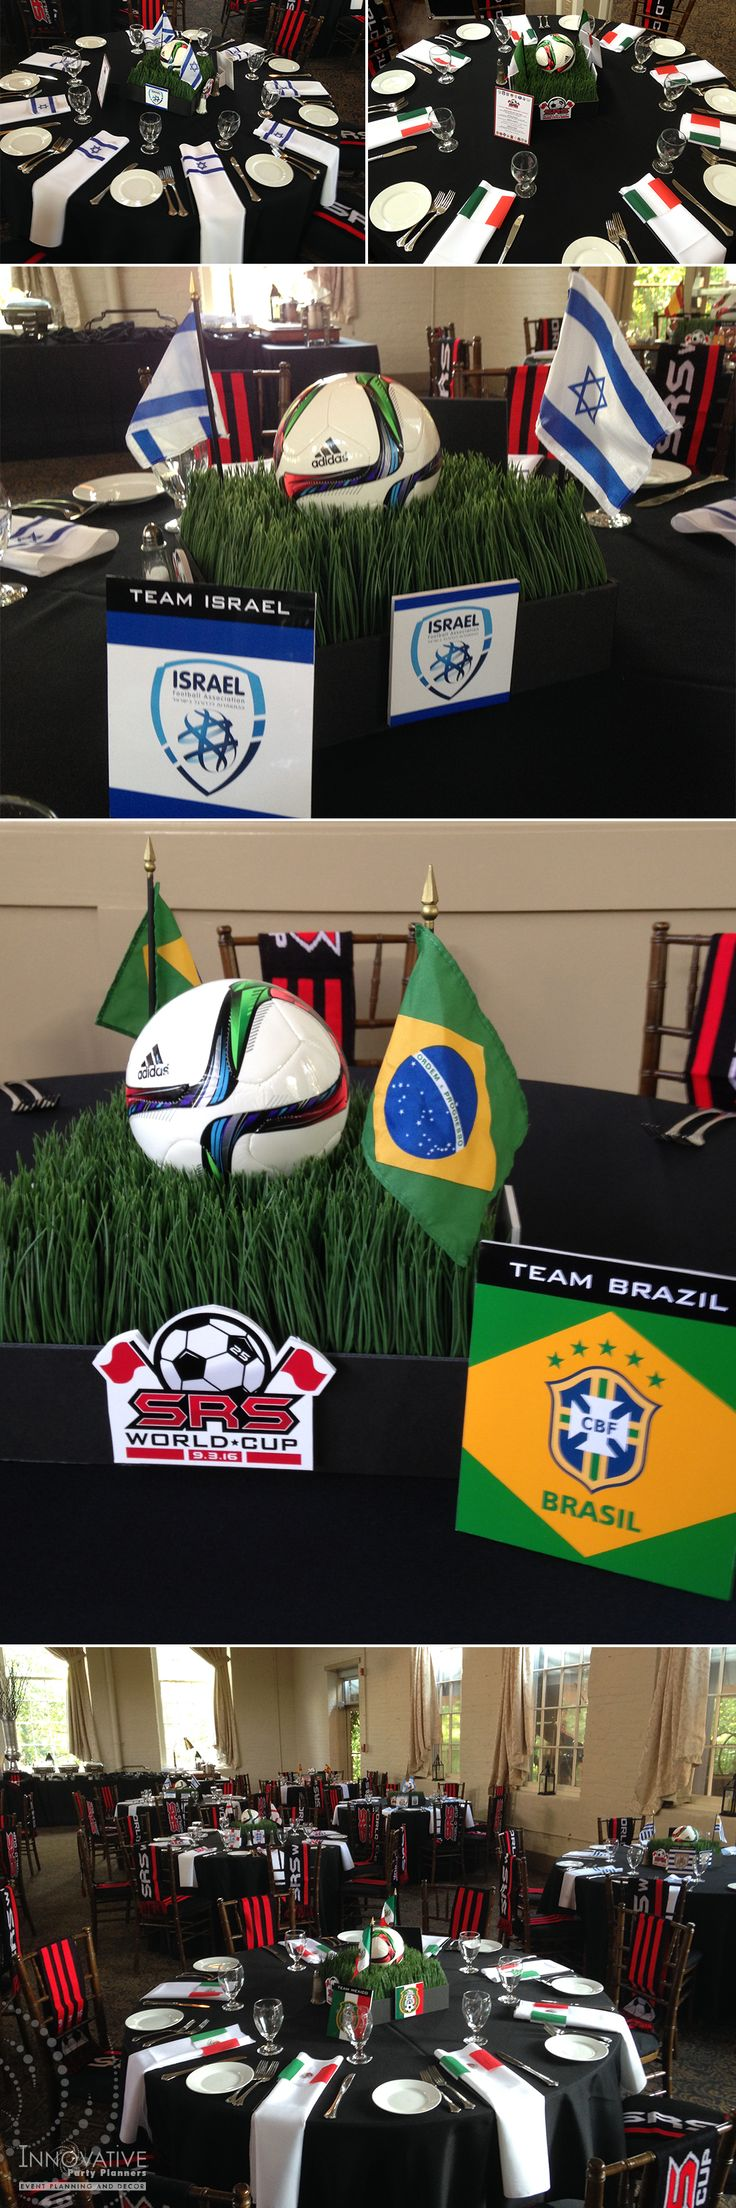 SRS World Cup Soccer Centerpieces included rye grass, soccer balls, country flags, custom table names and all were highlighted with custom Bar Mitzvah party logo. Event design and fabrication by Innovative Party Planners 410-998-9999.